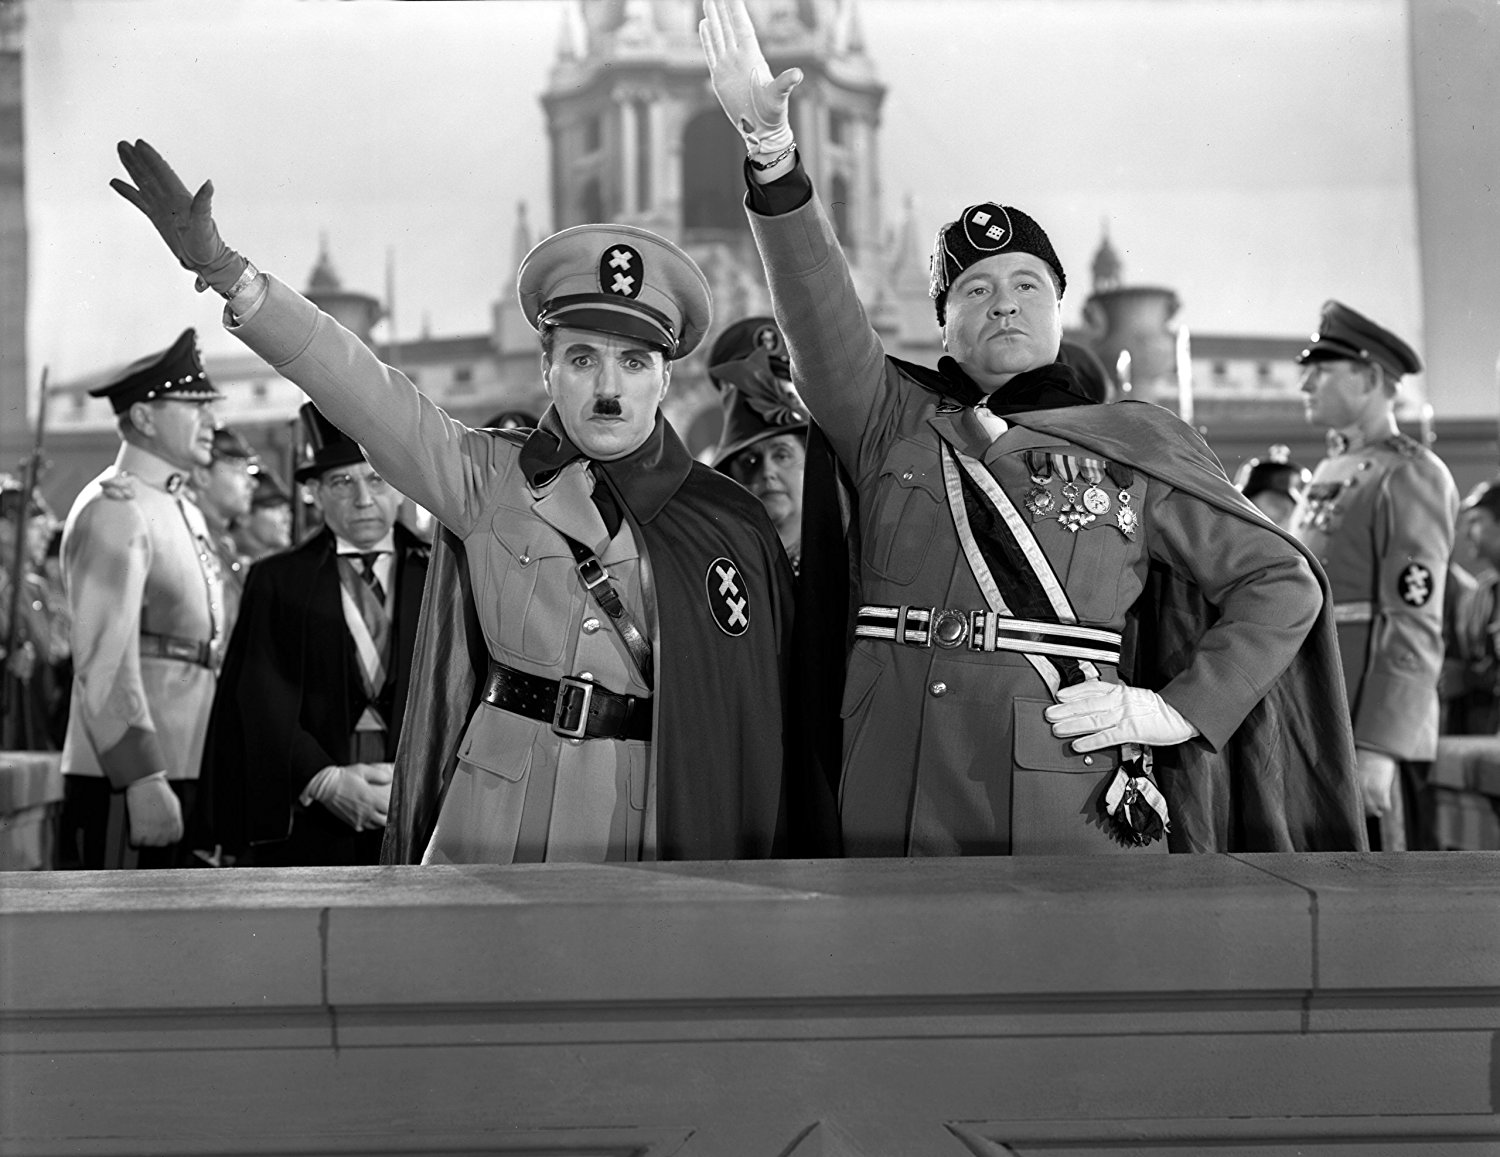 THE GREAT DICTATOR: Comedy As Protest